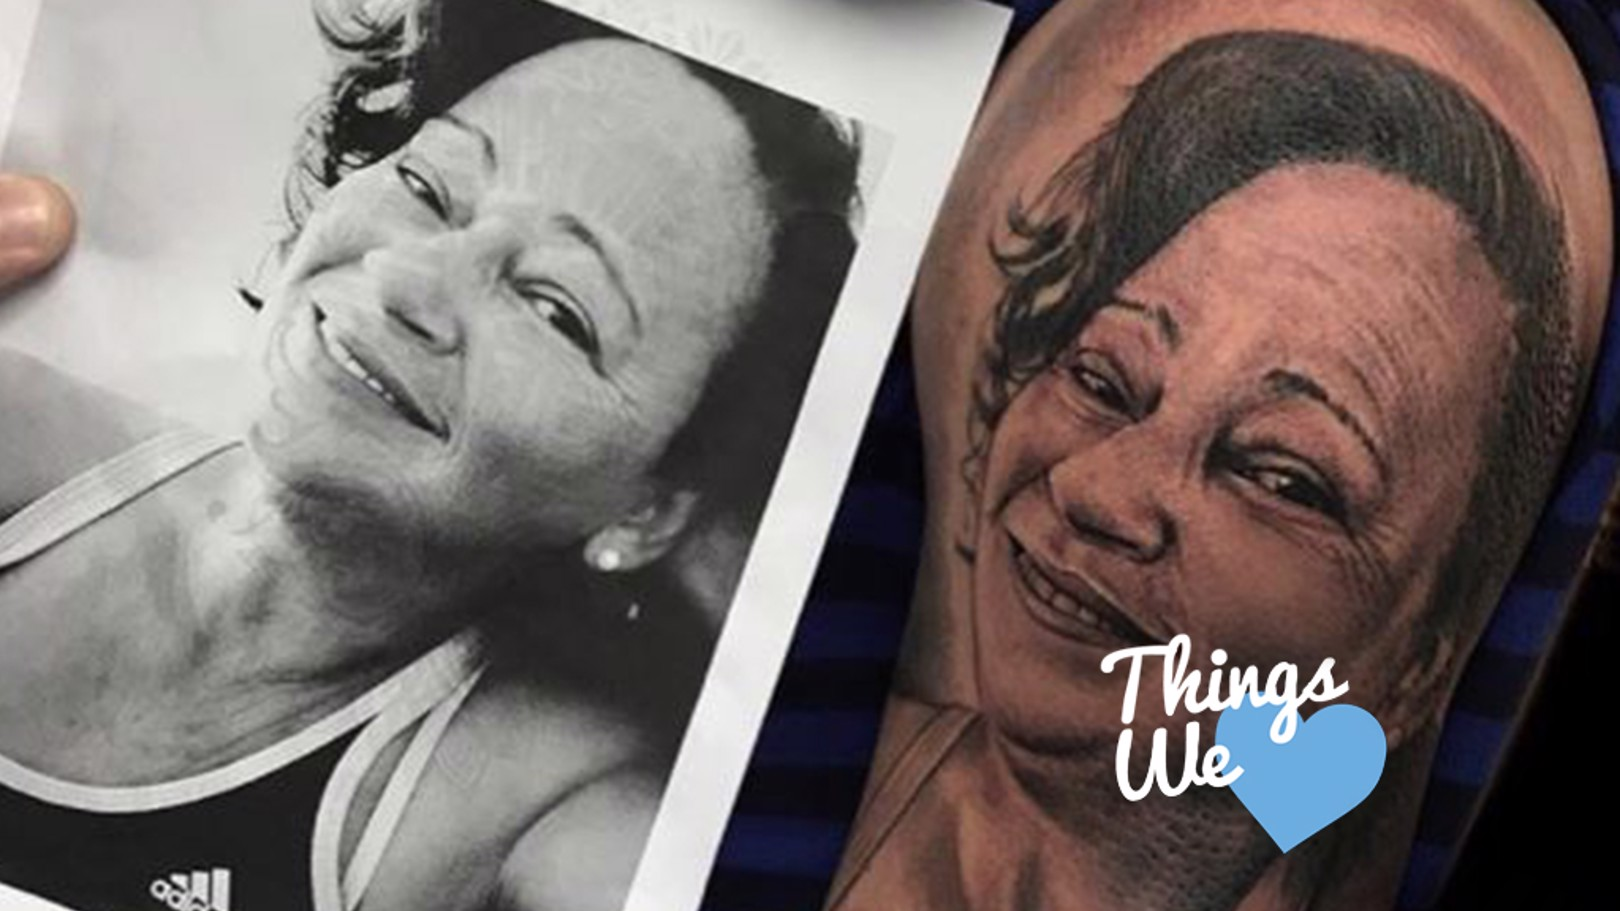 MOTHERLY LOVE: Gabriel Jesus shows off a recent tattoo of his mother